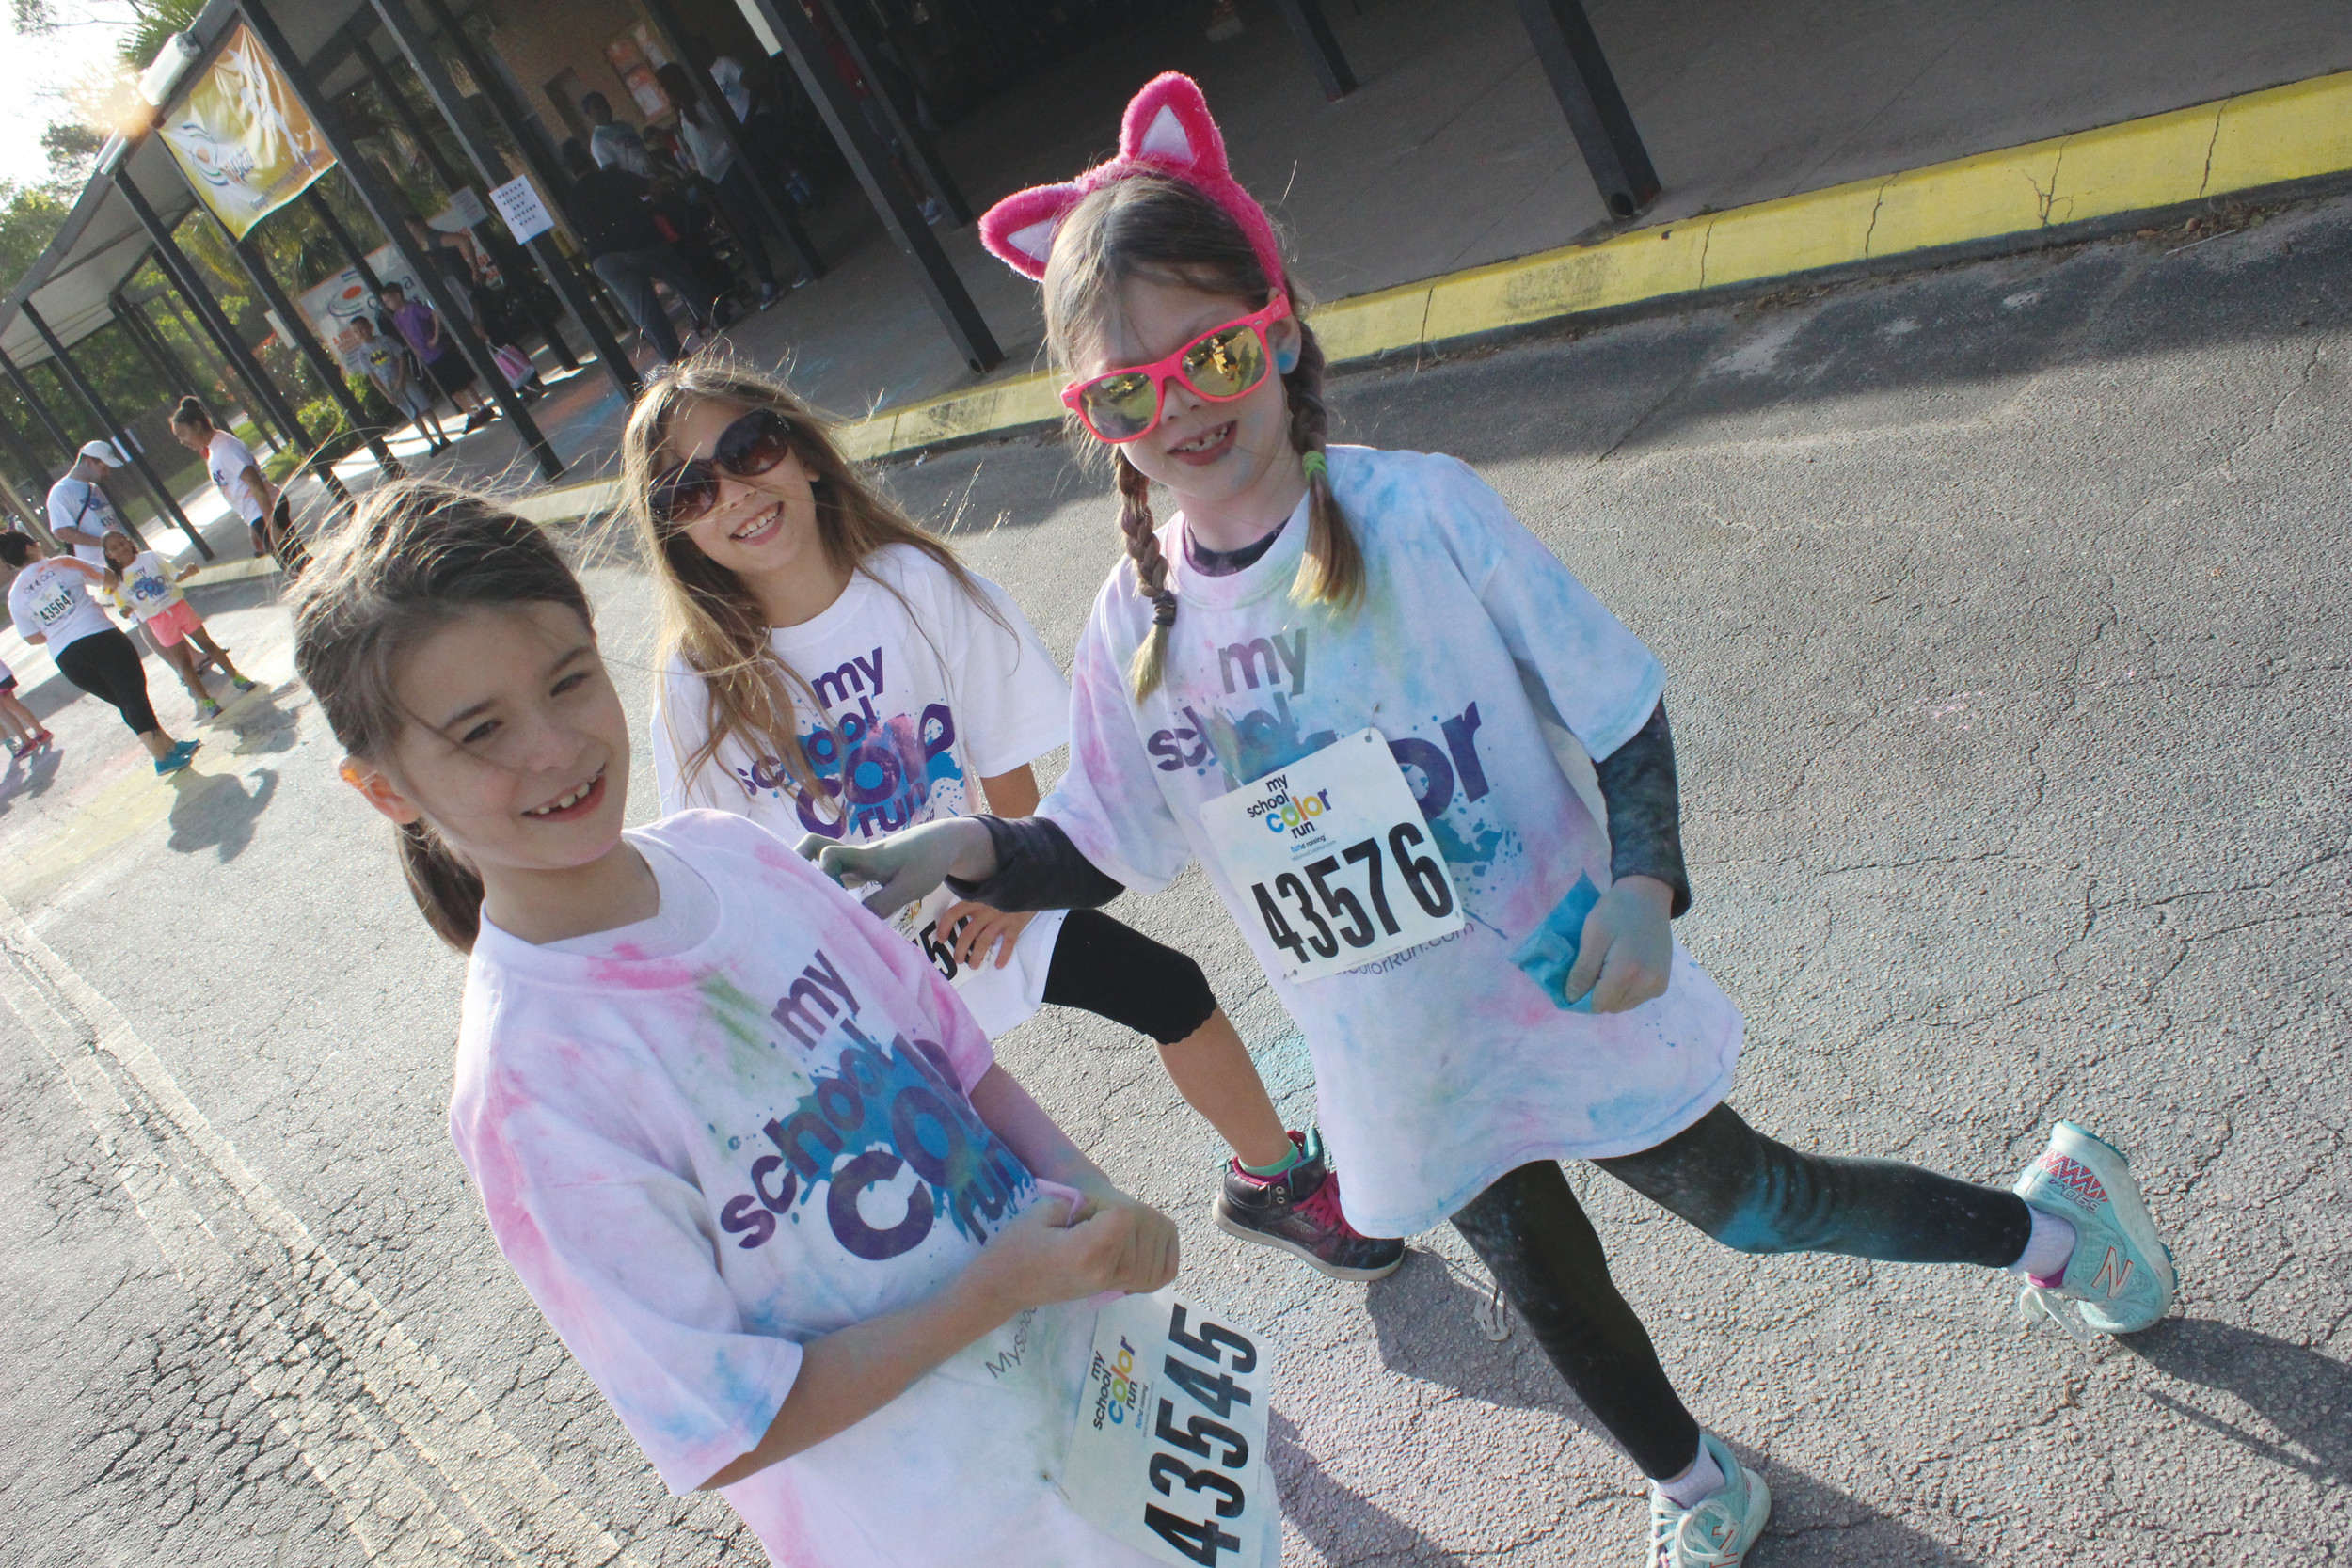 Three somewhat decorated runners, left to right, Savannah Martinez, Trisstin Quiett and Raven Shannon, get set for some running action at the OPPAA Color Me Rad 5k.